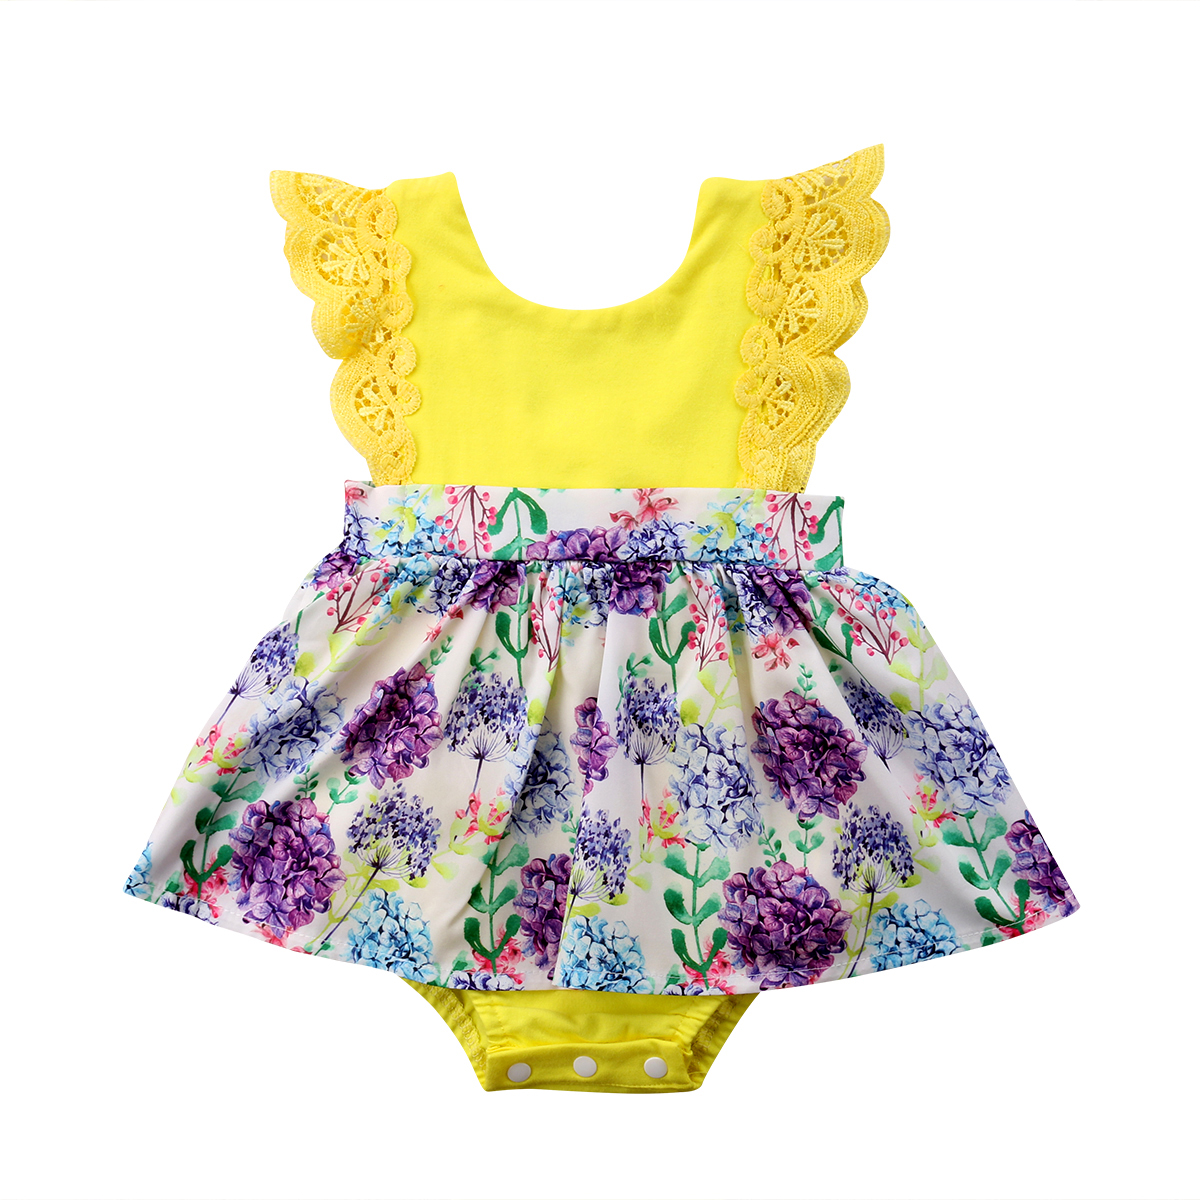 9c0acc352d65 Newborn Baby Girl Clothes Sister Matching Floral Jumpsuit Romper Dress  Ruffles Outfit Set Clothing Baby Girls 0-6T